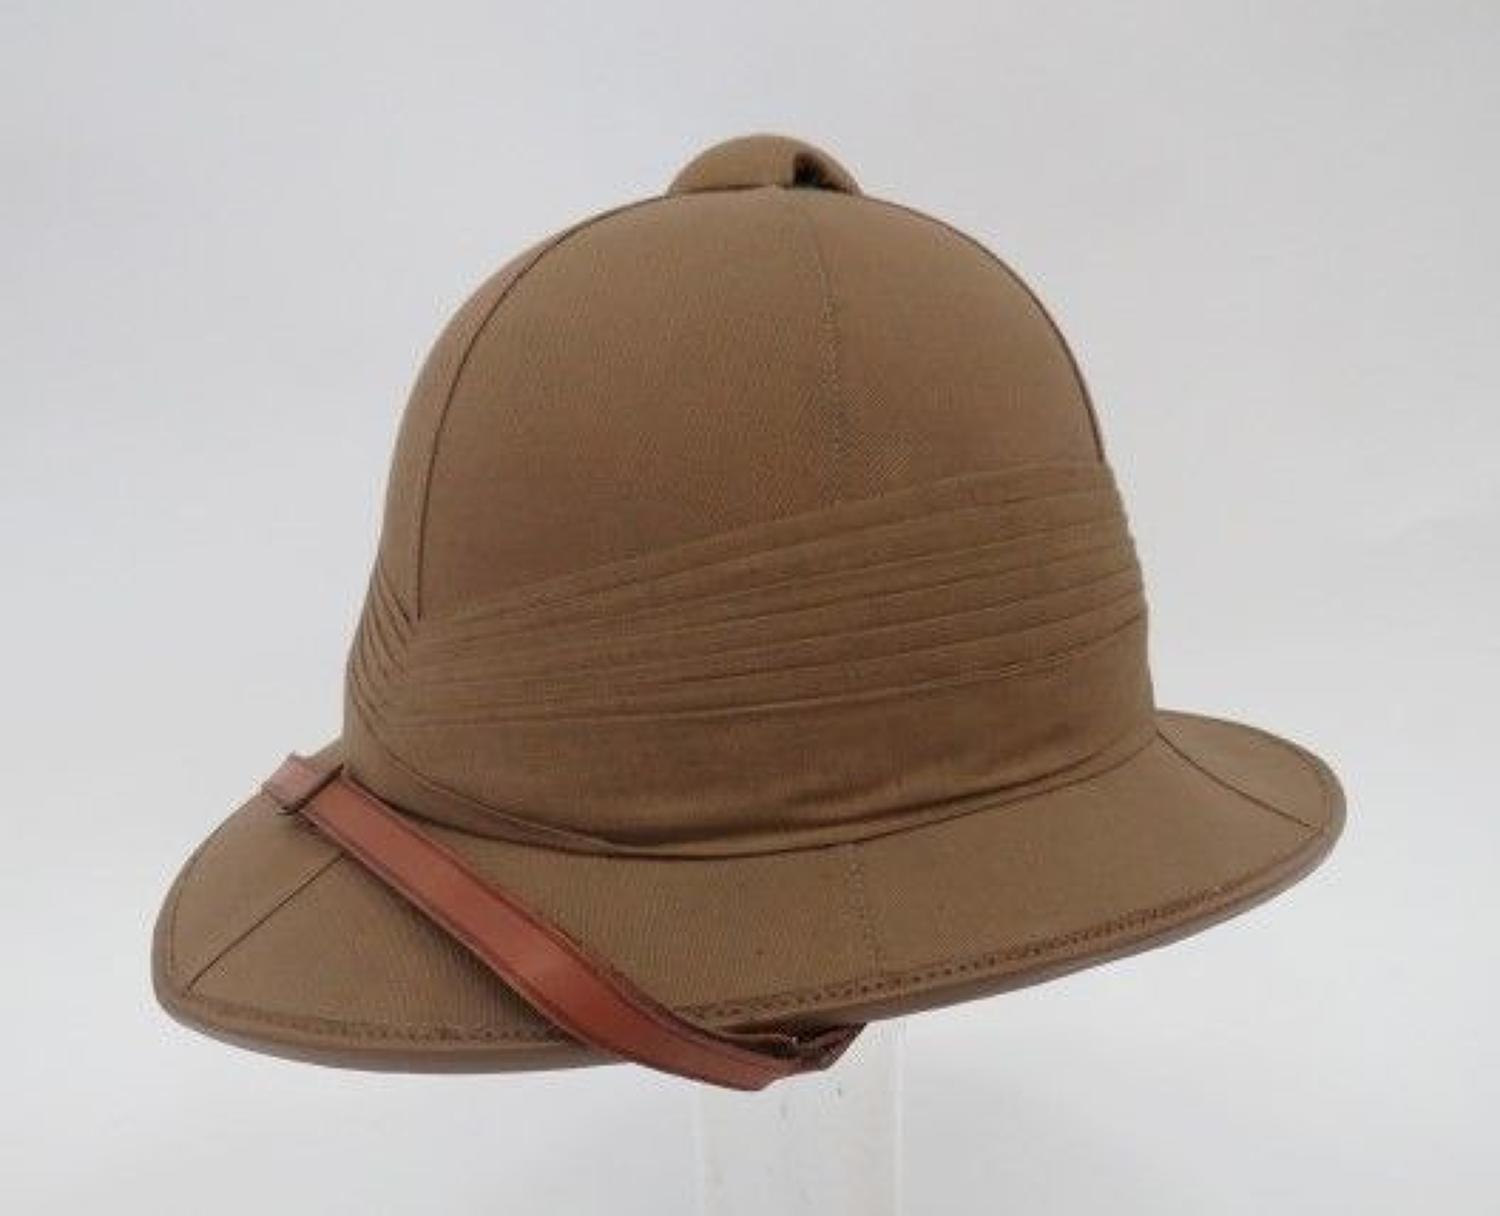 Unworn Interwar Officers Pith Helmet